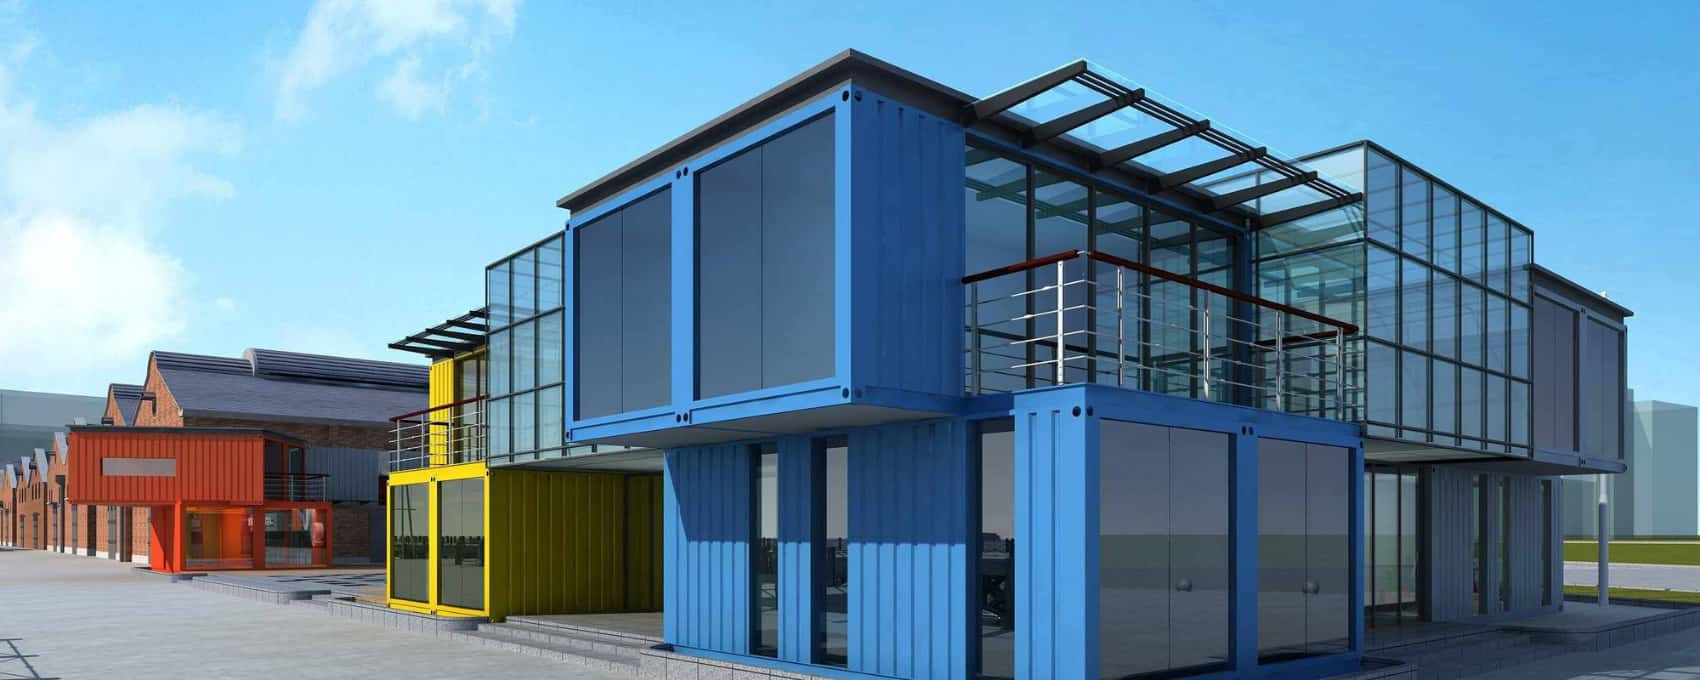 Are Shipping Container Homes The Answer To The Housing Market Crisis?